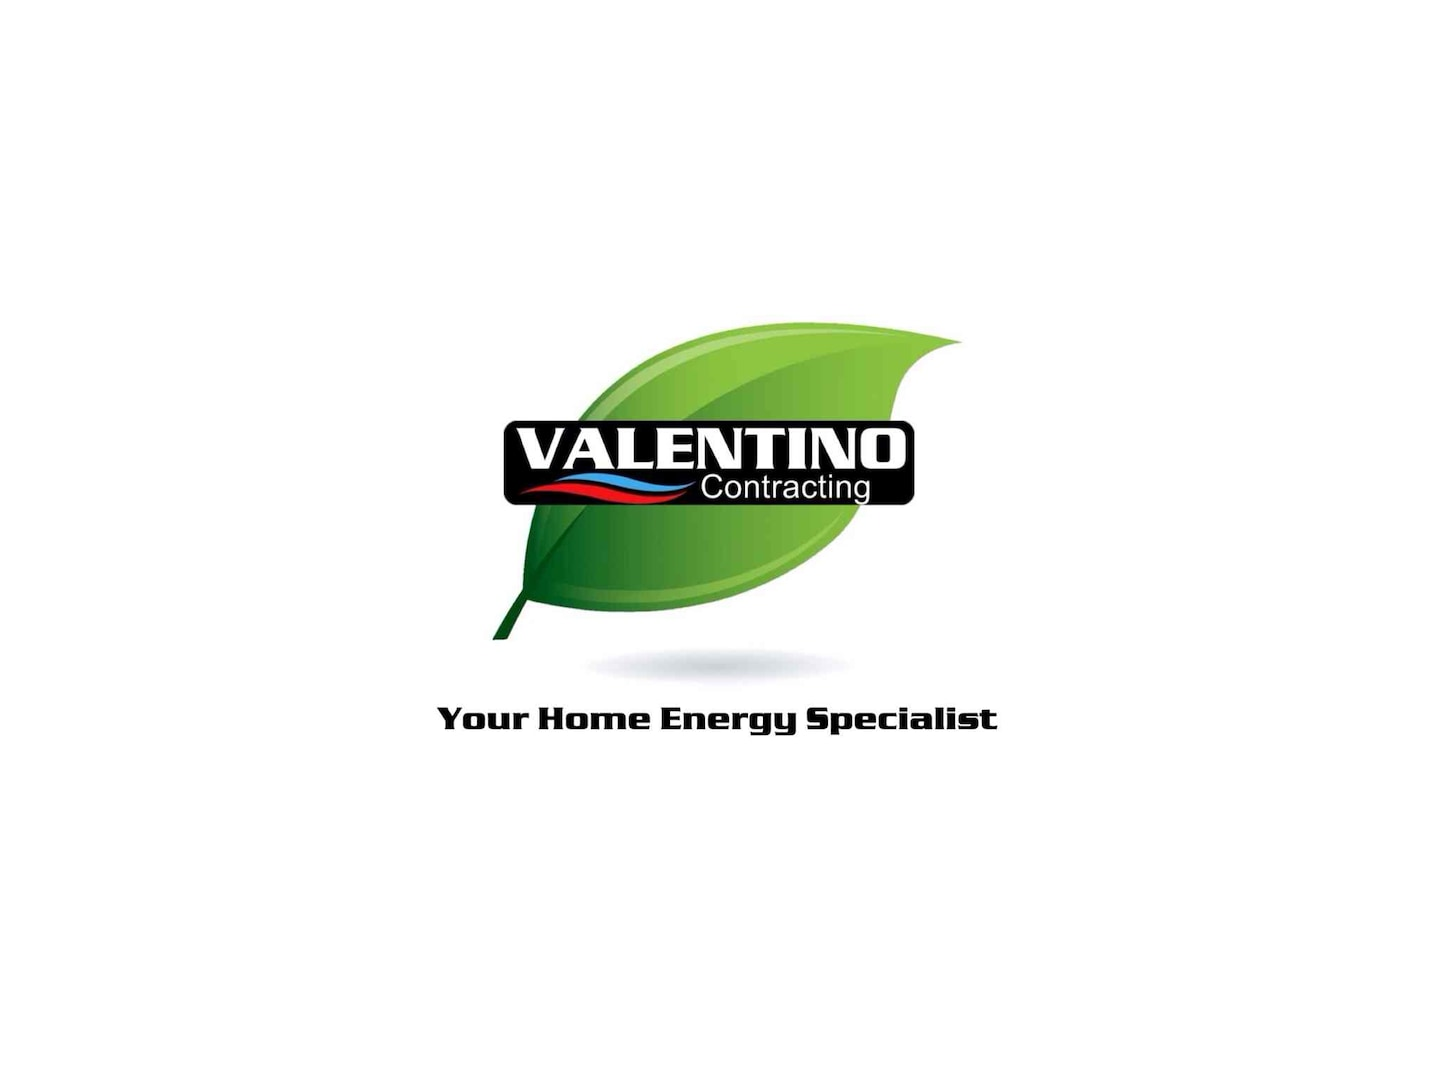 Valentino HVAC and Electrical Contracting